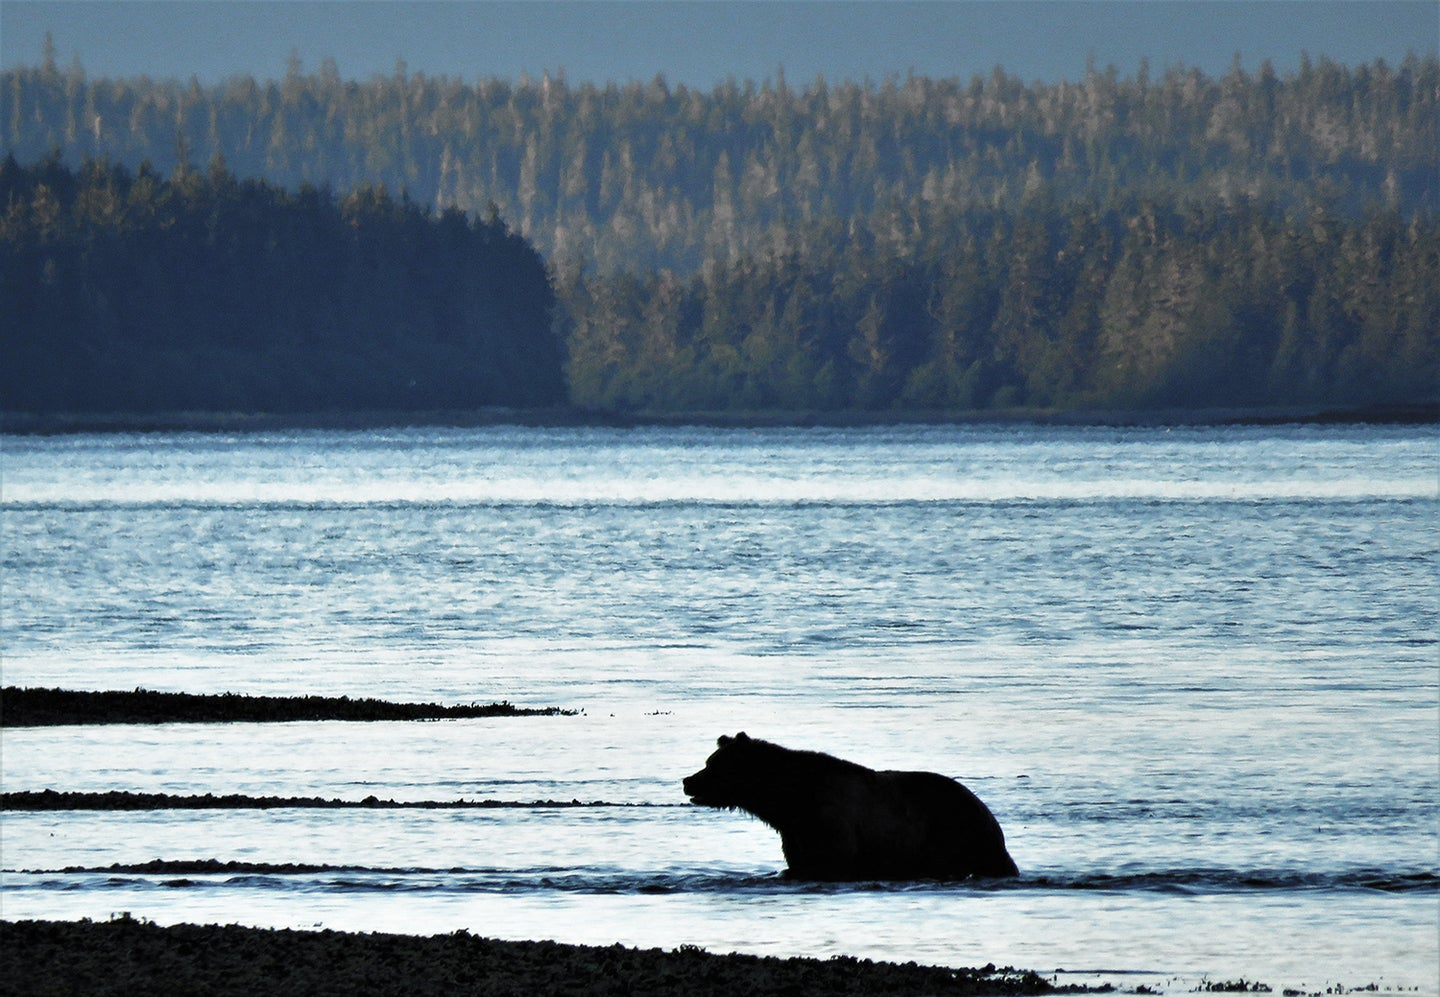 A large, male brown bear fishes for salmon in the Tongass National Forest.